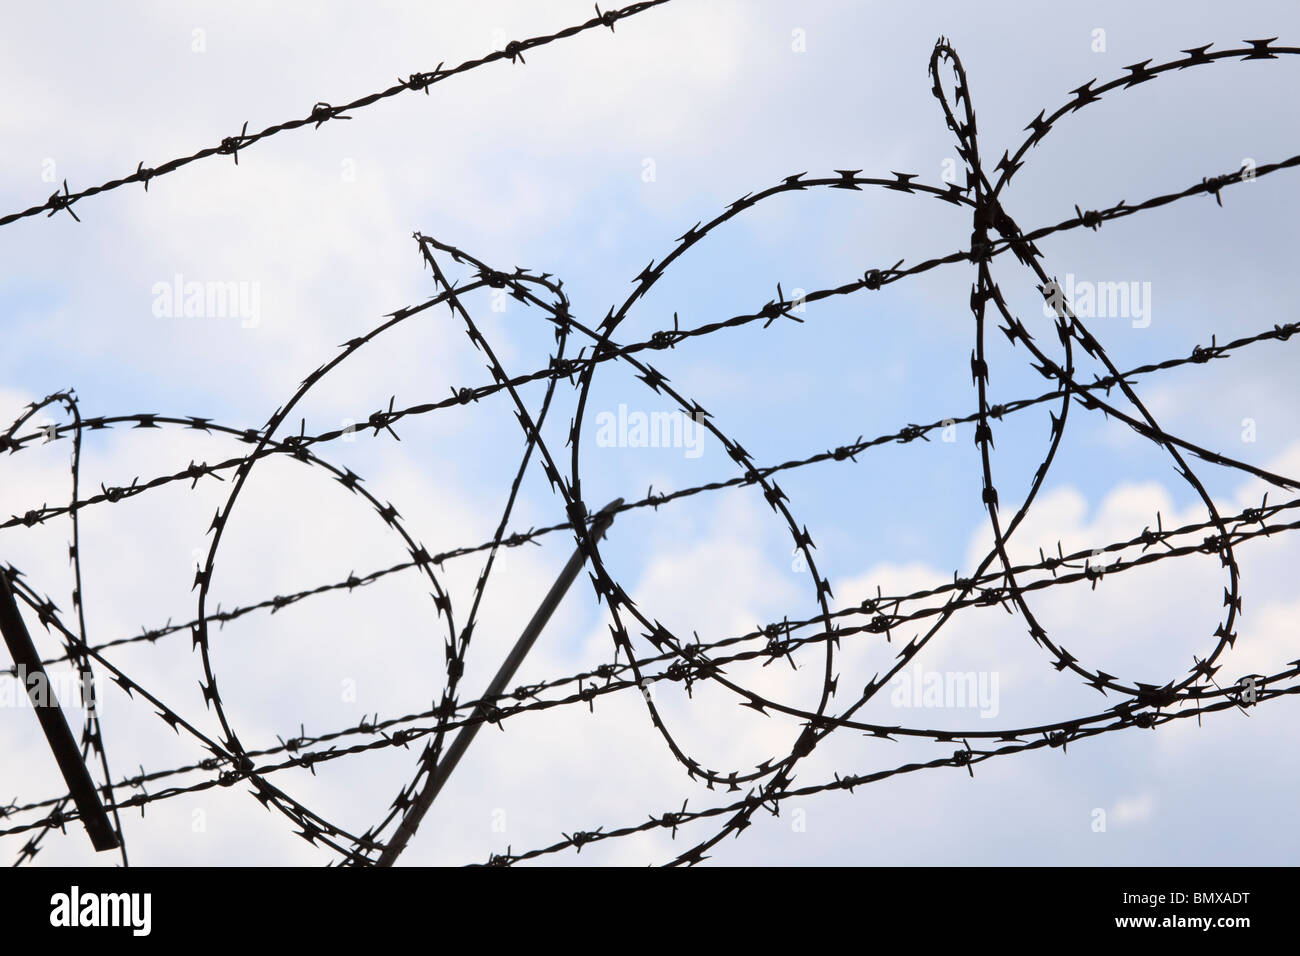 Coiled barbed wire against a cloudy blue sky. - Stock Image